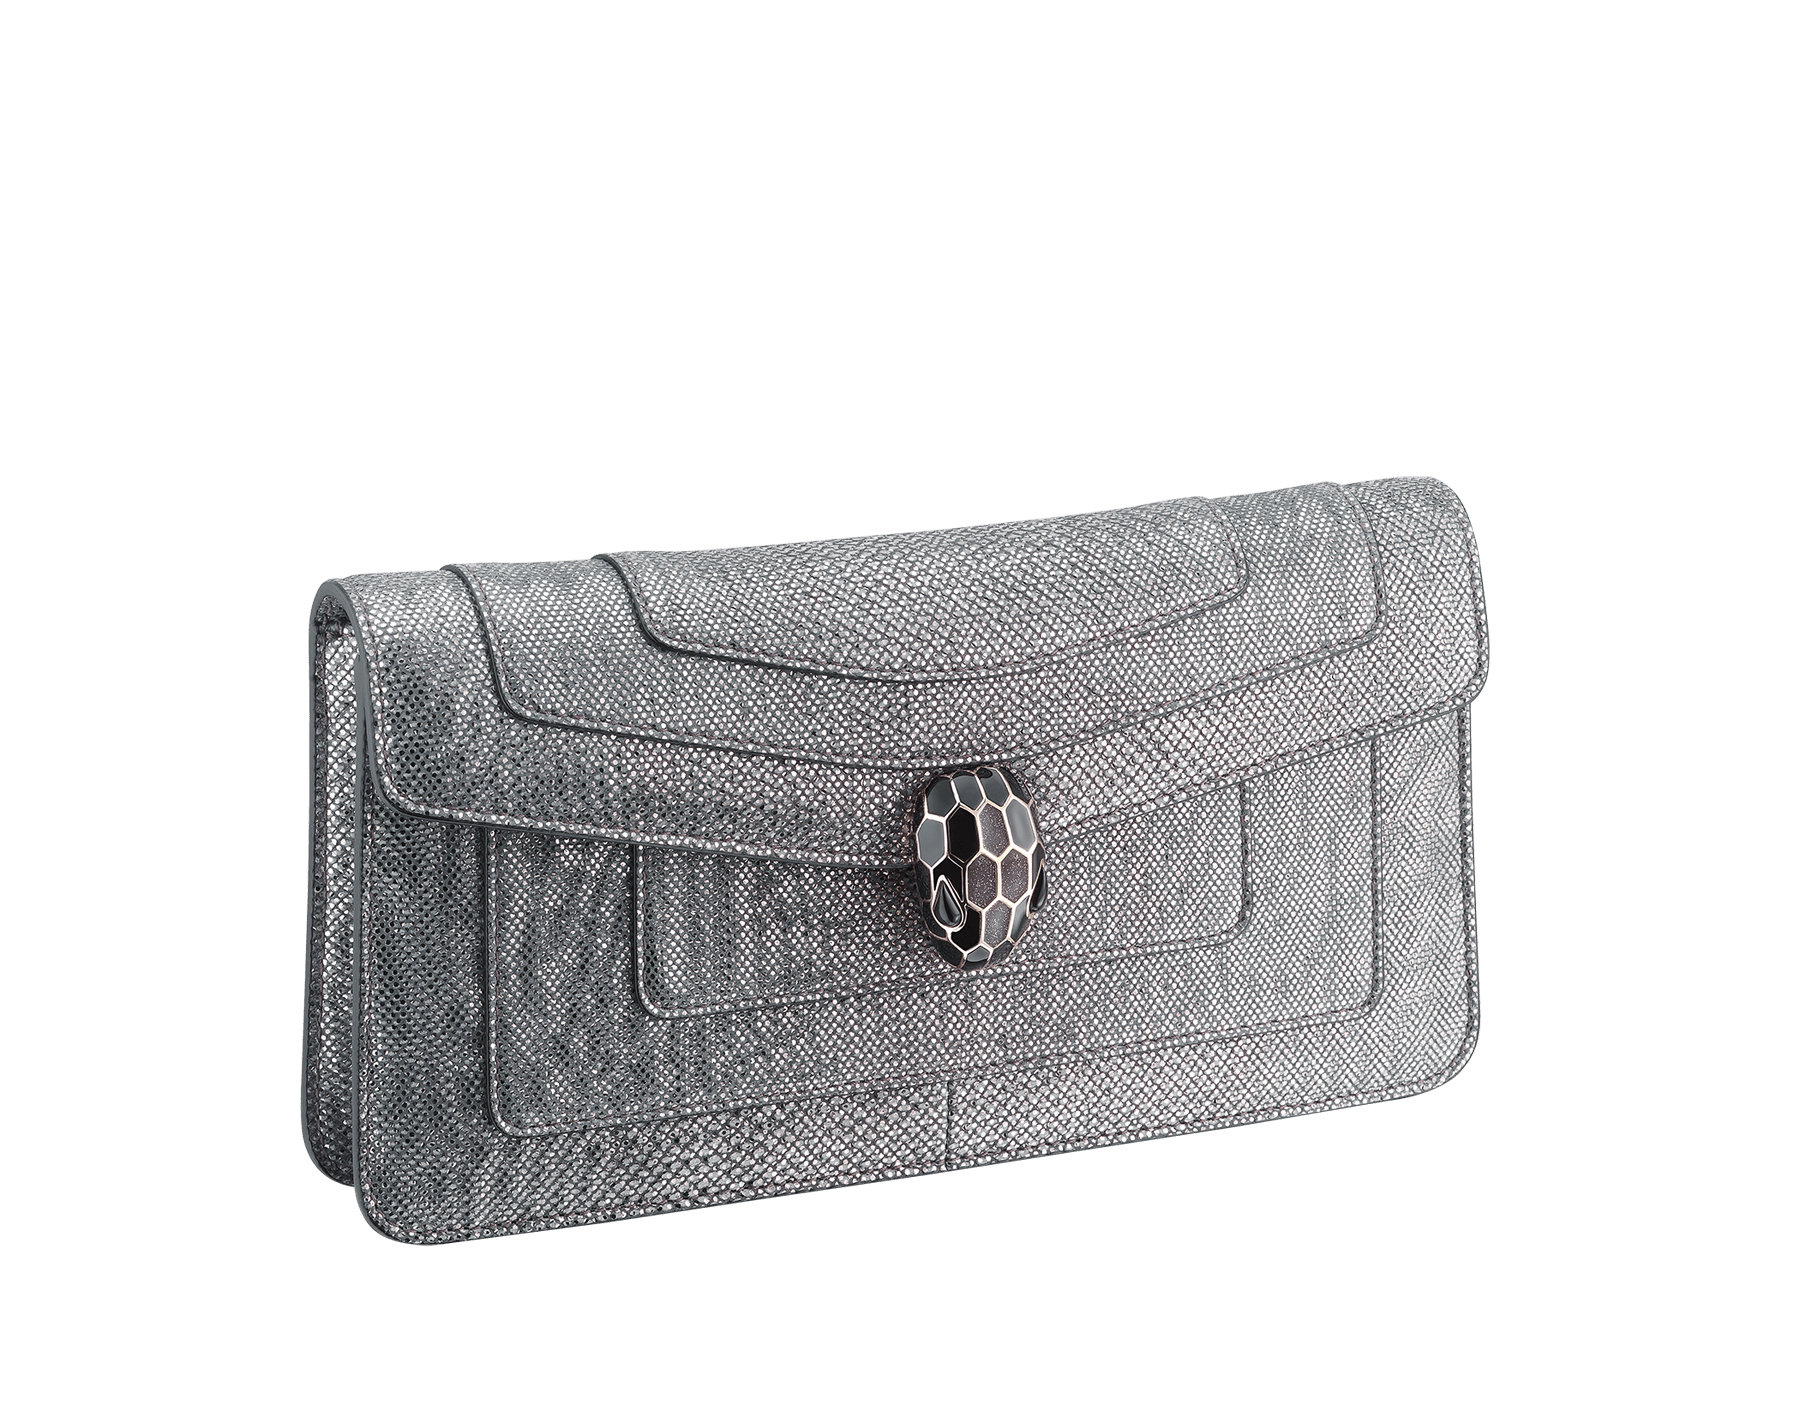 Serpenti Forever shoulder bag in charcoal diamond metallic karung skin. Snakehead closure in light gold plated brass decorated with shiny black and glitter charcoal diamond enamel, and black onyx eyes. 287945 image 2